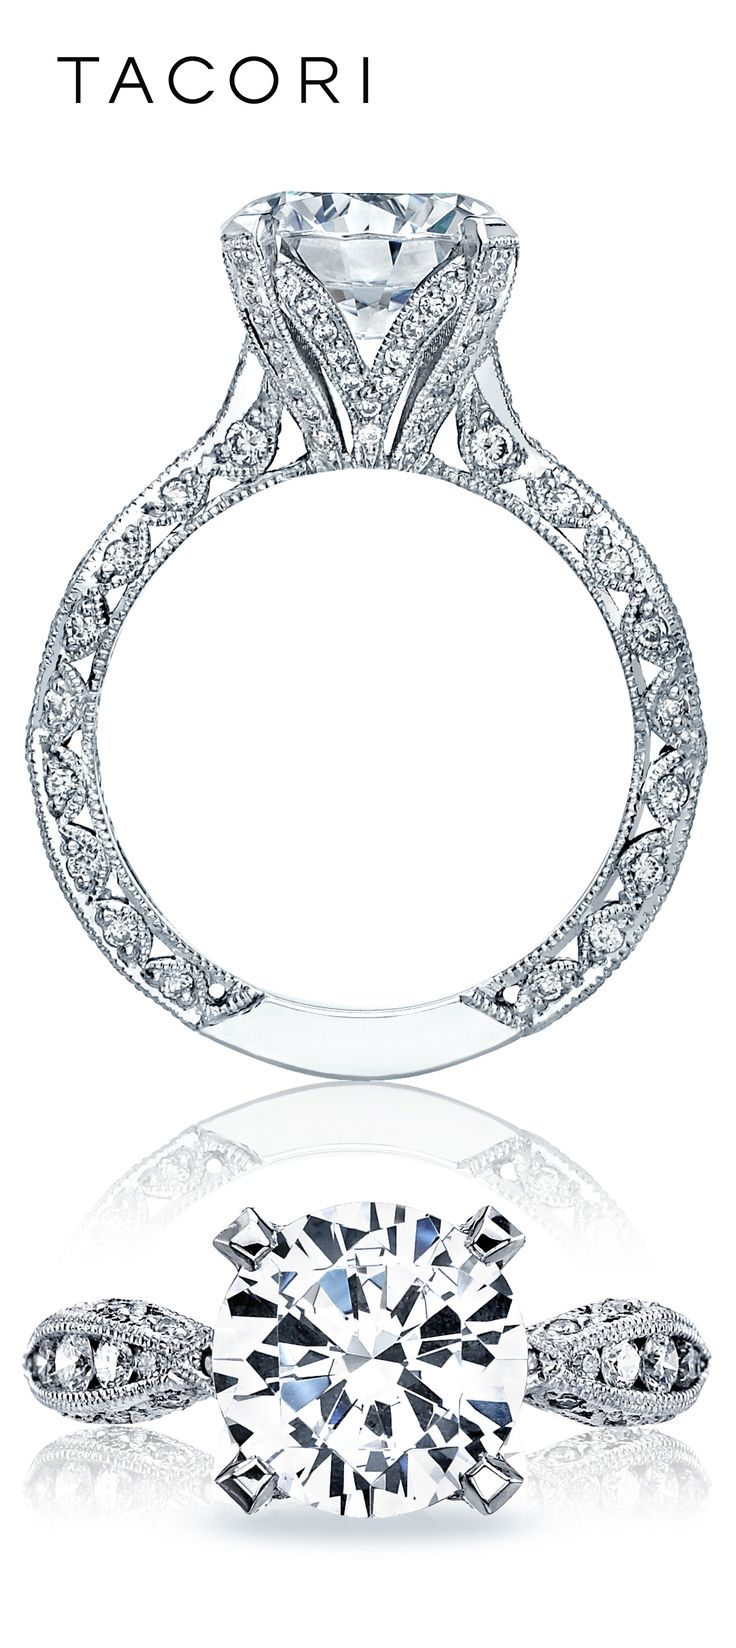 "A Tacori Girl favorite is further beautified in the ""RoyalT"" collection, taking the popular pave-set ribbon band and enhancing it for a 3.50 carat brilliant round center stone. The intricate 4-pronged, pave set gallery beneath the center diamond is evocative of a budding flower reaching ultimate beauty. Can you say breathtaking?"